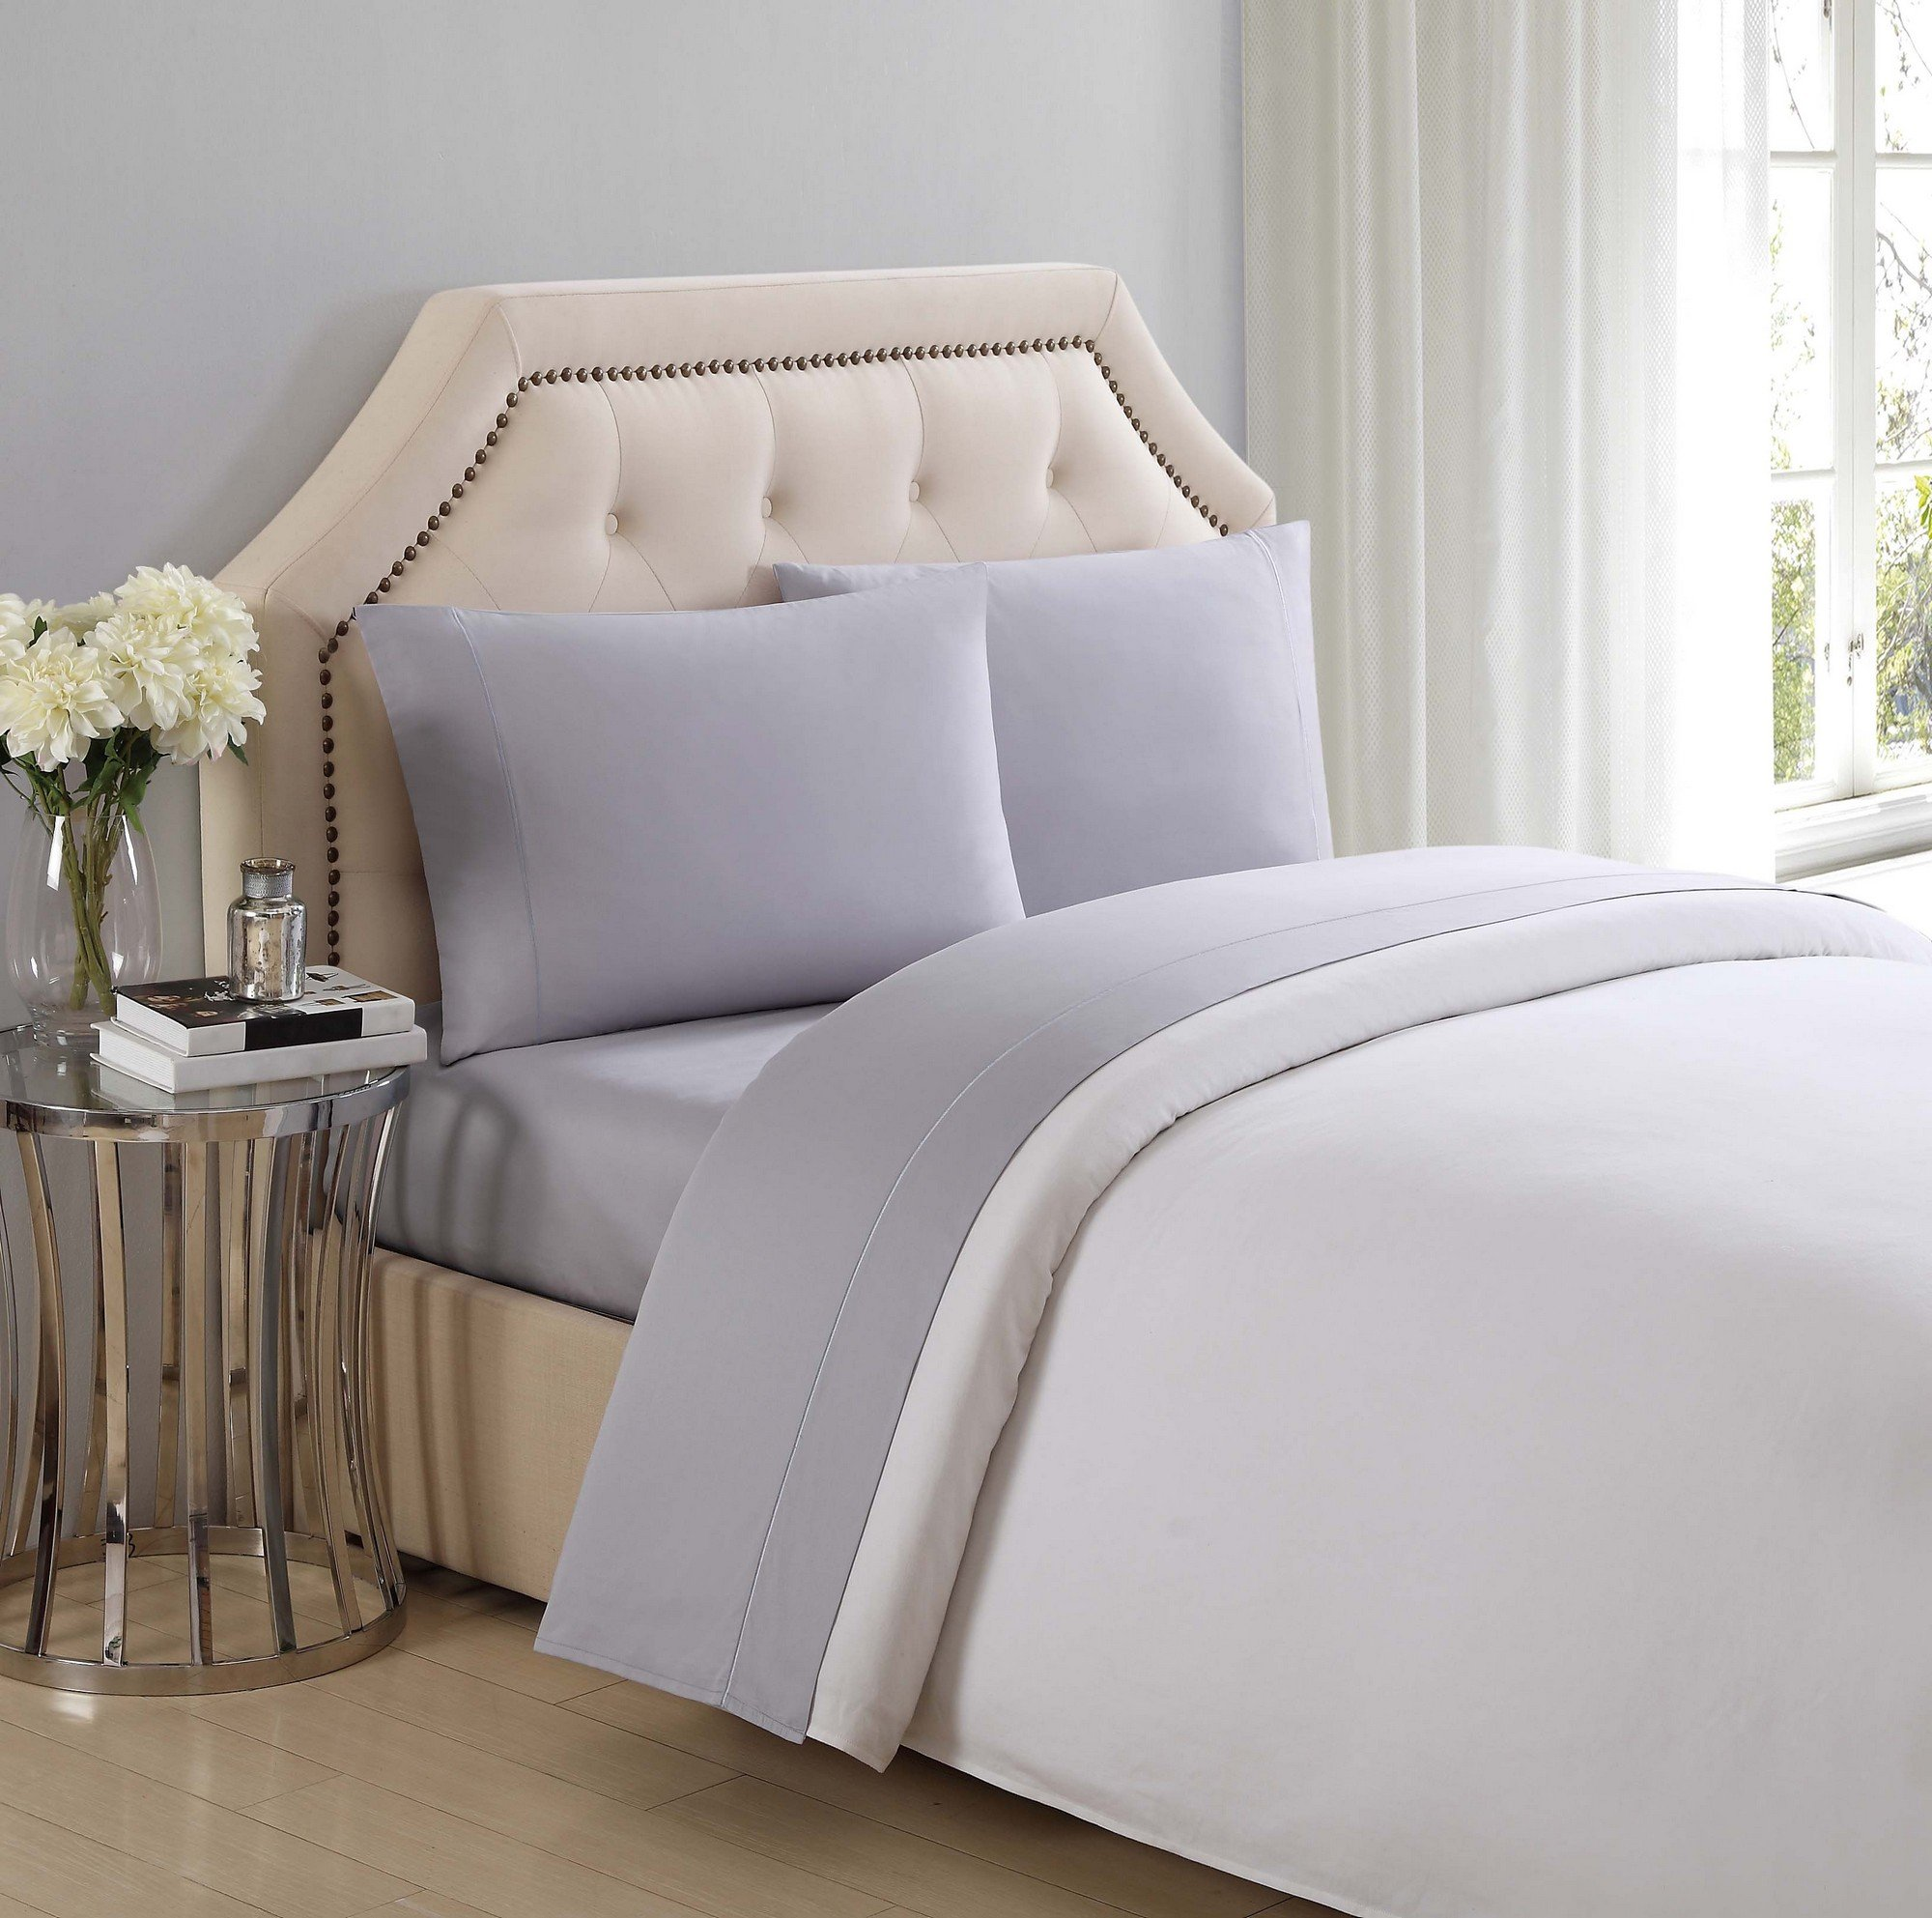 Charisma 310 Thread Count Classic Solid Cotton Sateen King Sheet Set in Rain Drops